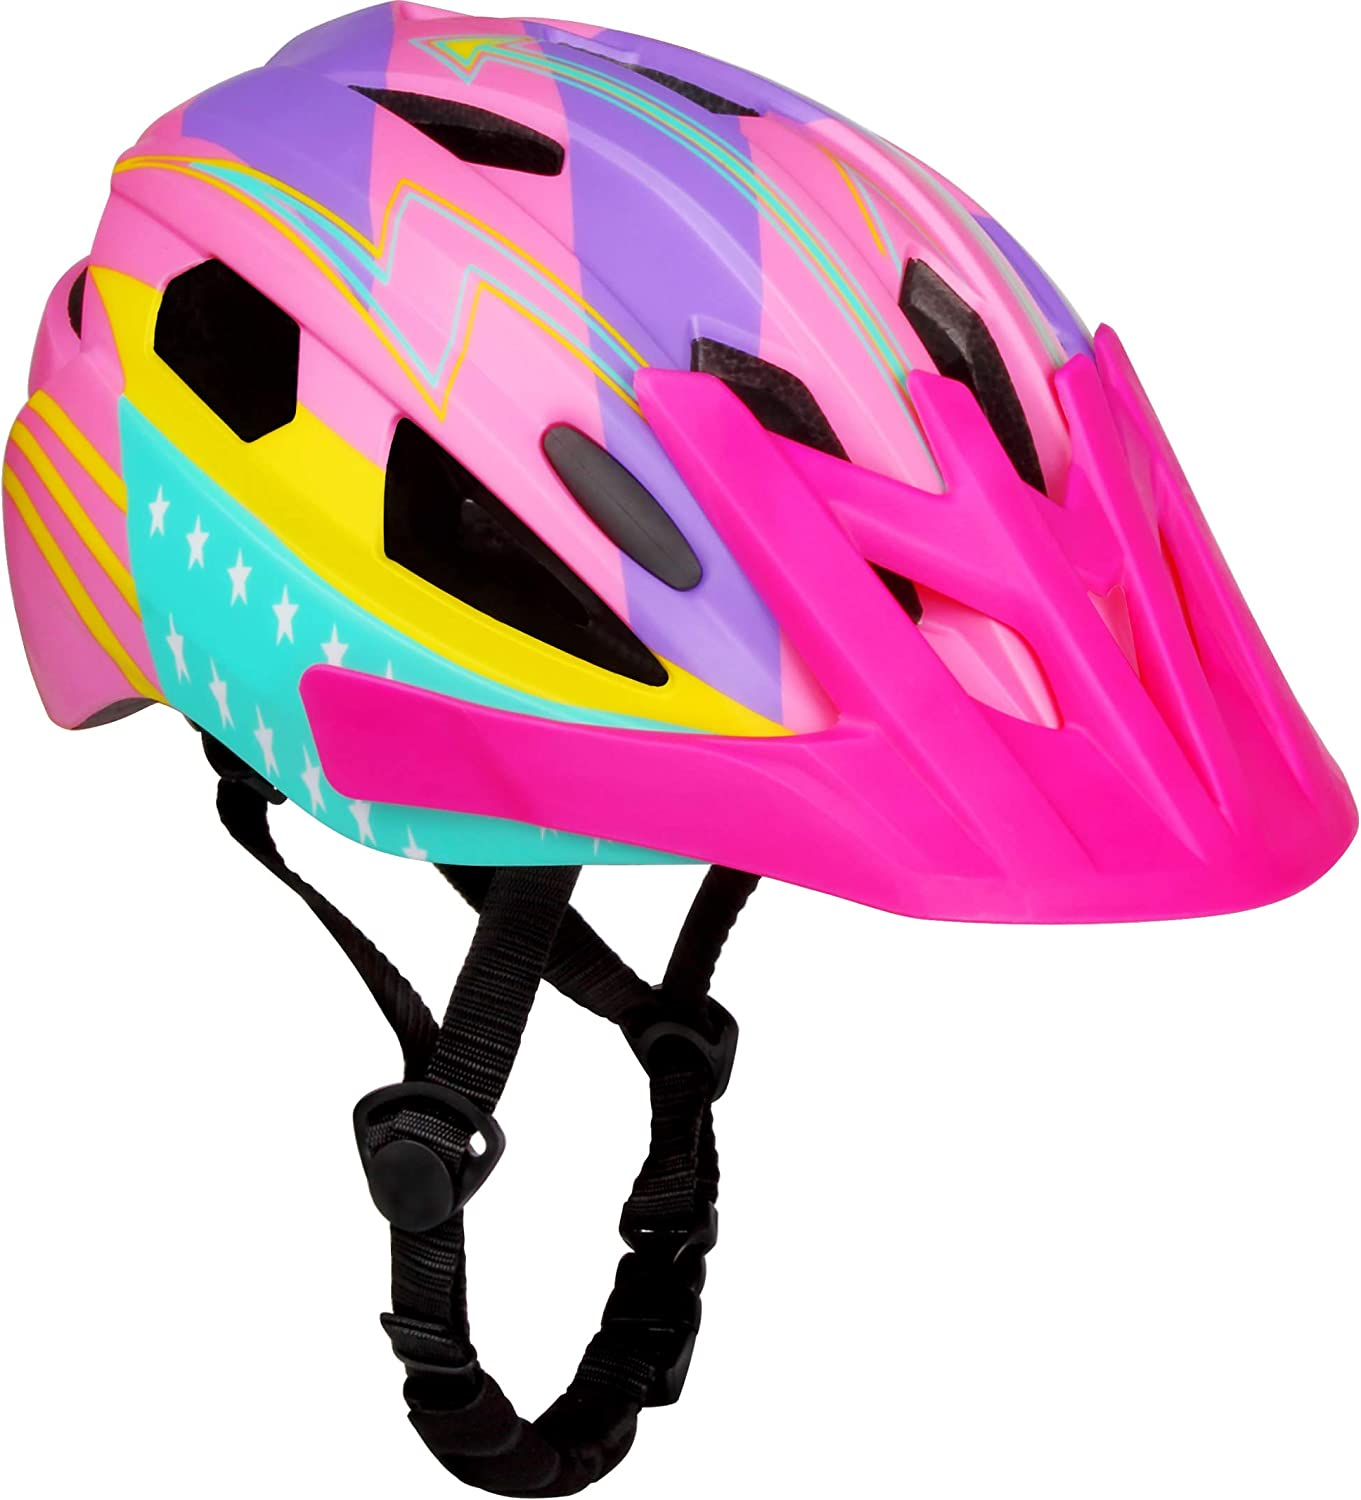 M Merkapa Bike Helmet, CPSC Certified Cycling Helmet with Rear Light, Specialized for Mens Womens Safety Protection, Collocated with a Headband